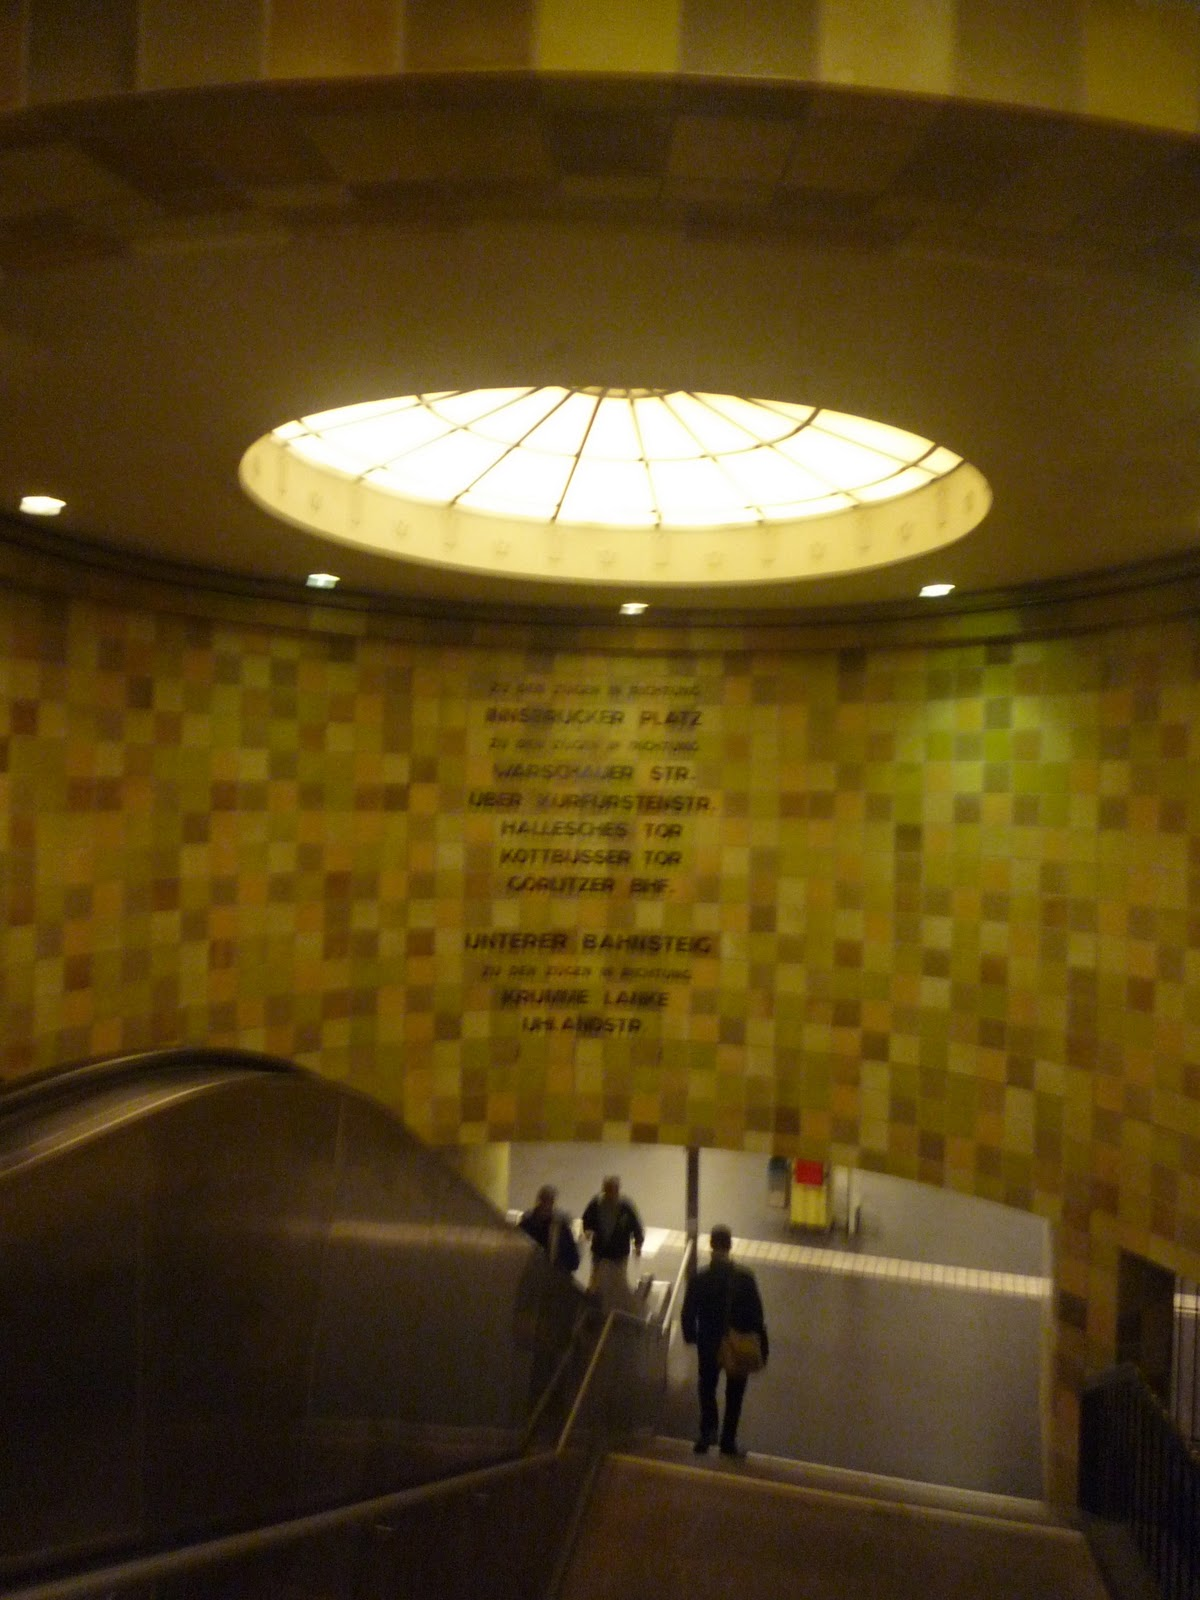 Generalized anxiety treatment bvgg - The Great Thing About The U Bahn In General Is Its Simplicity By Sticking To One Basic Station Design A Single Island Platform Stairs At Each End